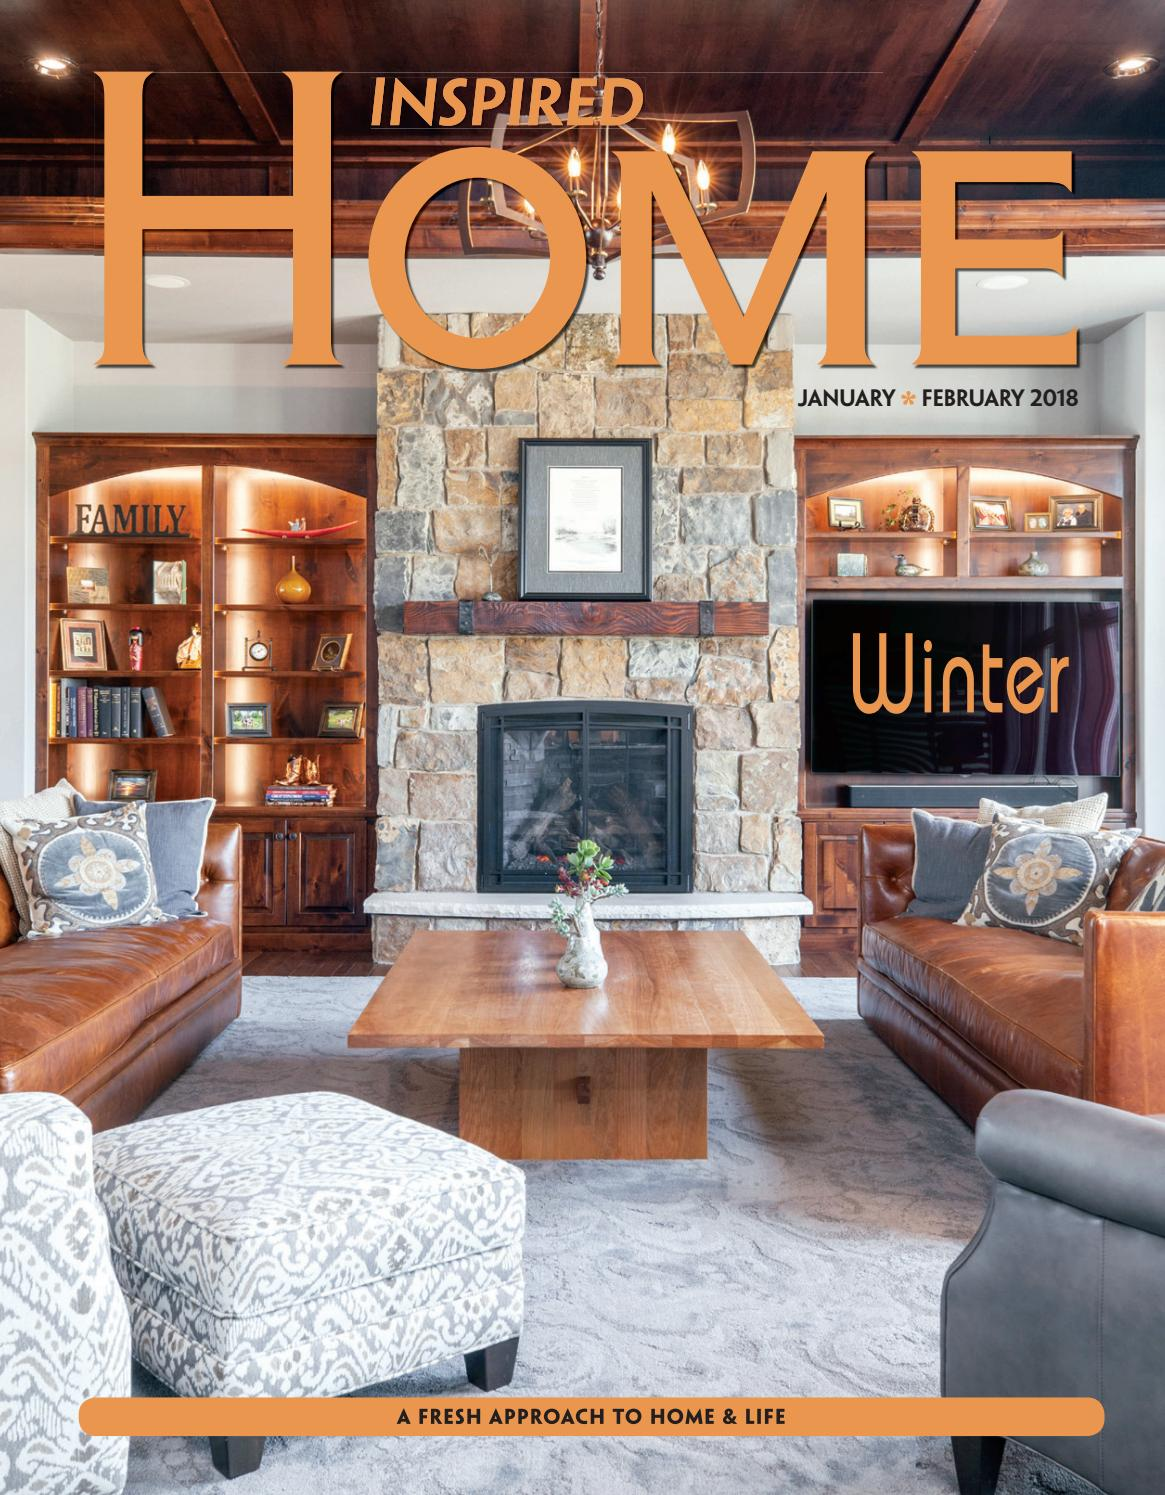 Fargo inspired home magazine jan feb 2018 by inspired home magazine fargo issuu